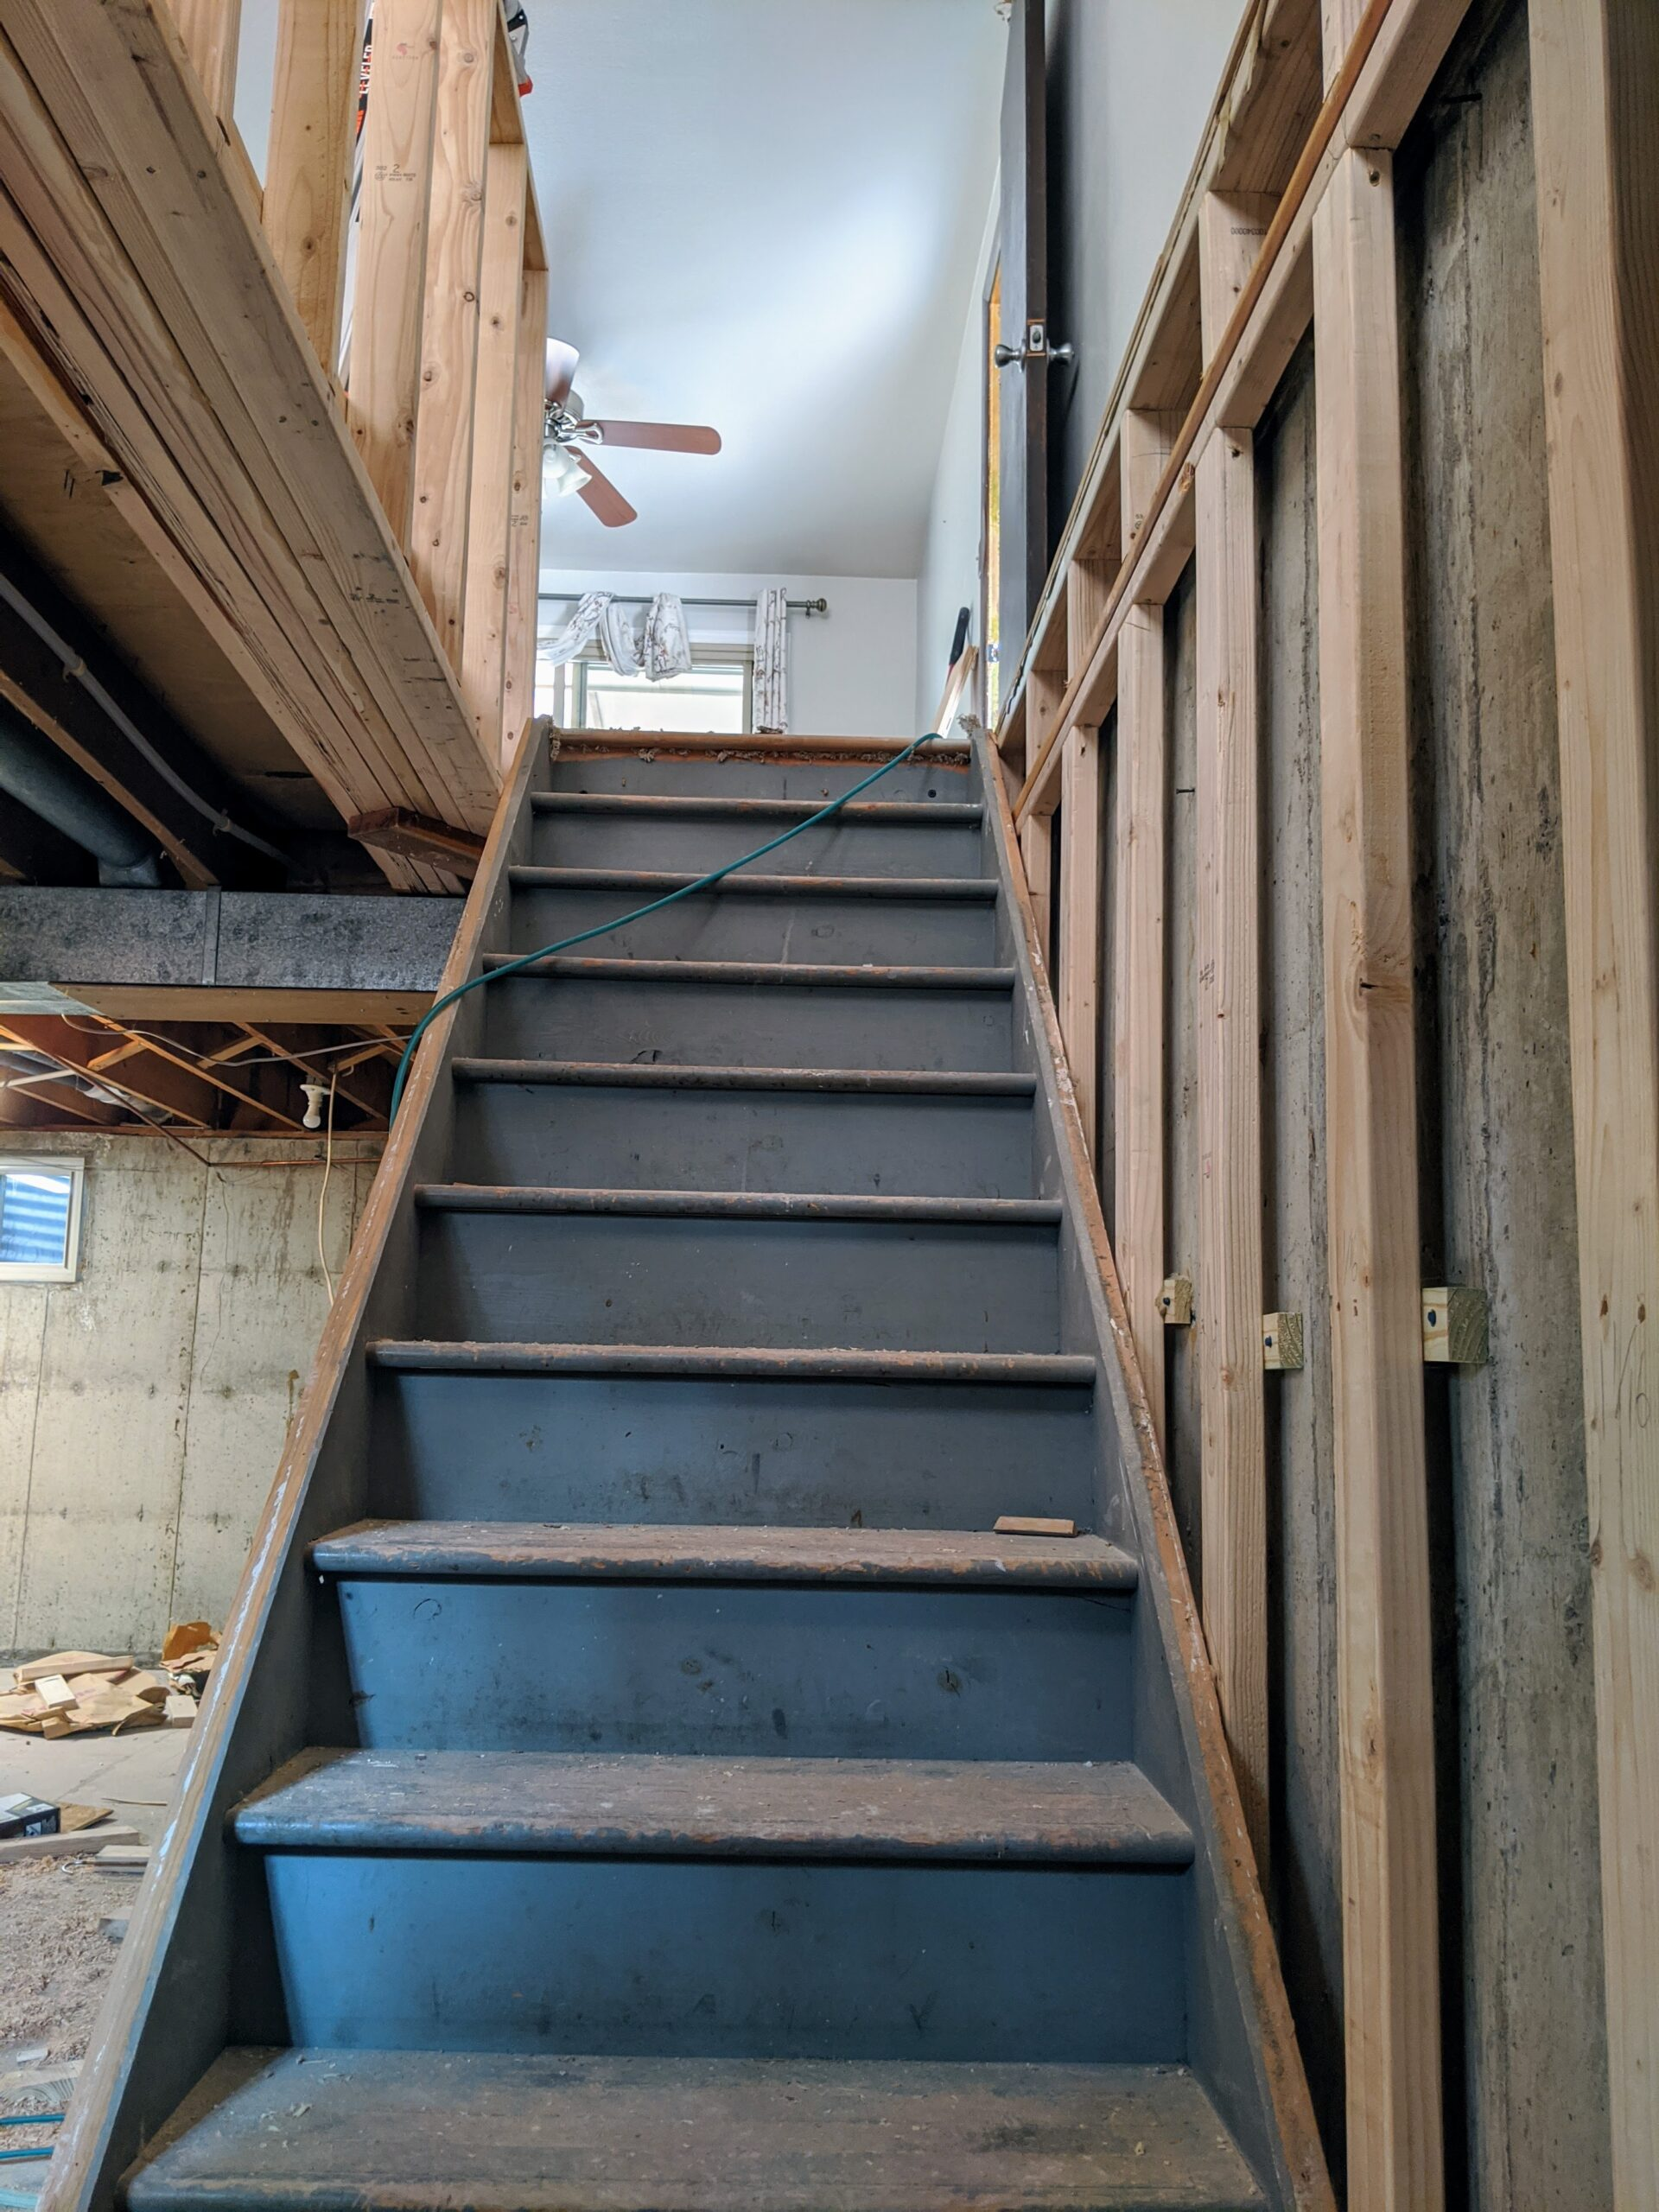 We reused the original stairs in a new location to maximize the approximately 2,200 square feet of space in our new home.